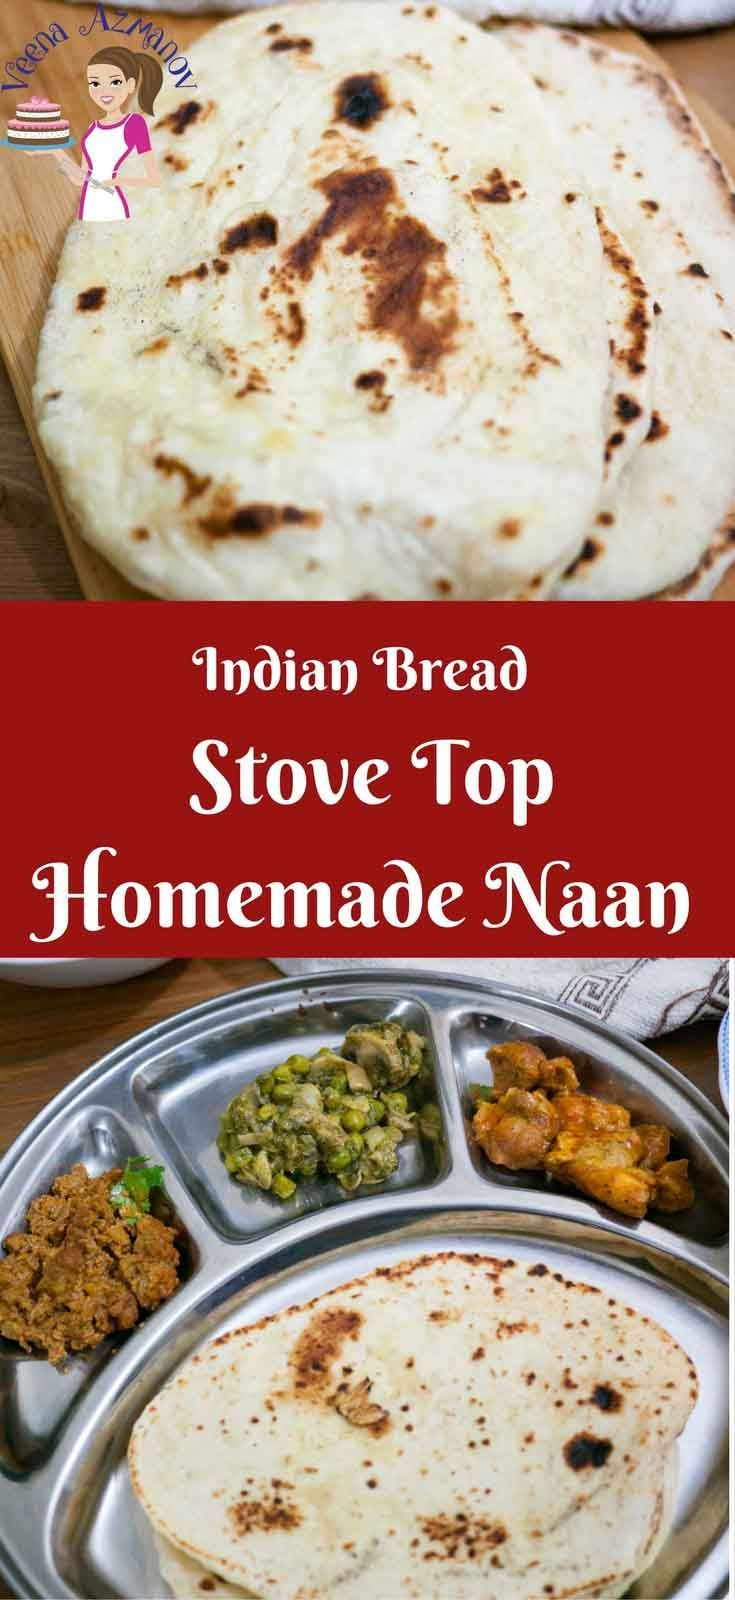 Stove Top Homemade Naan